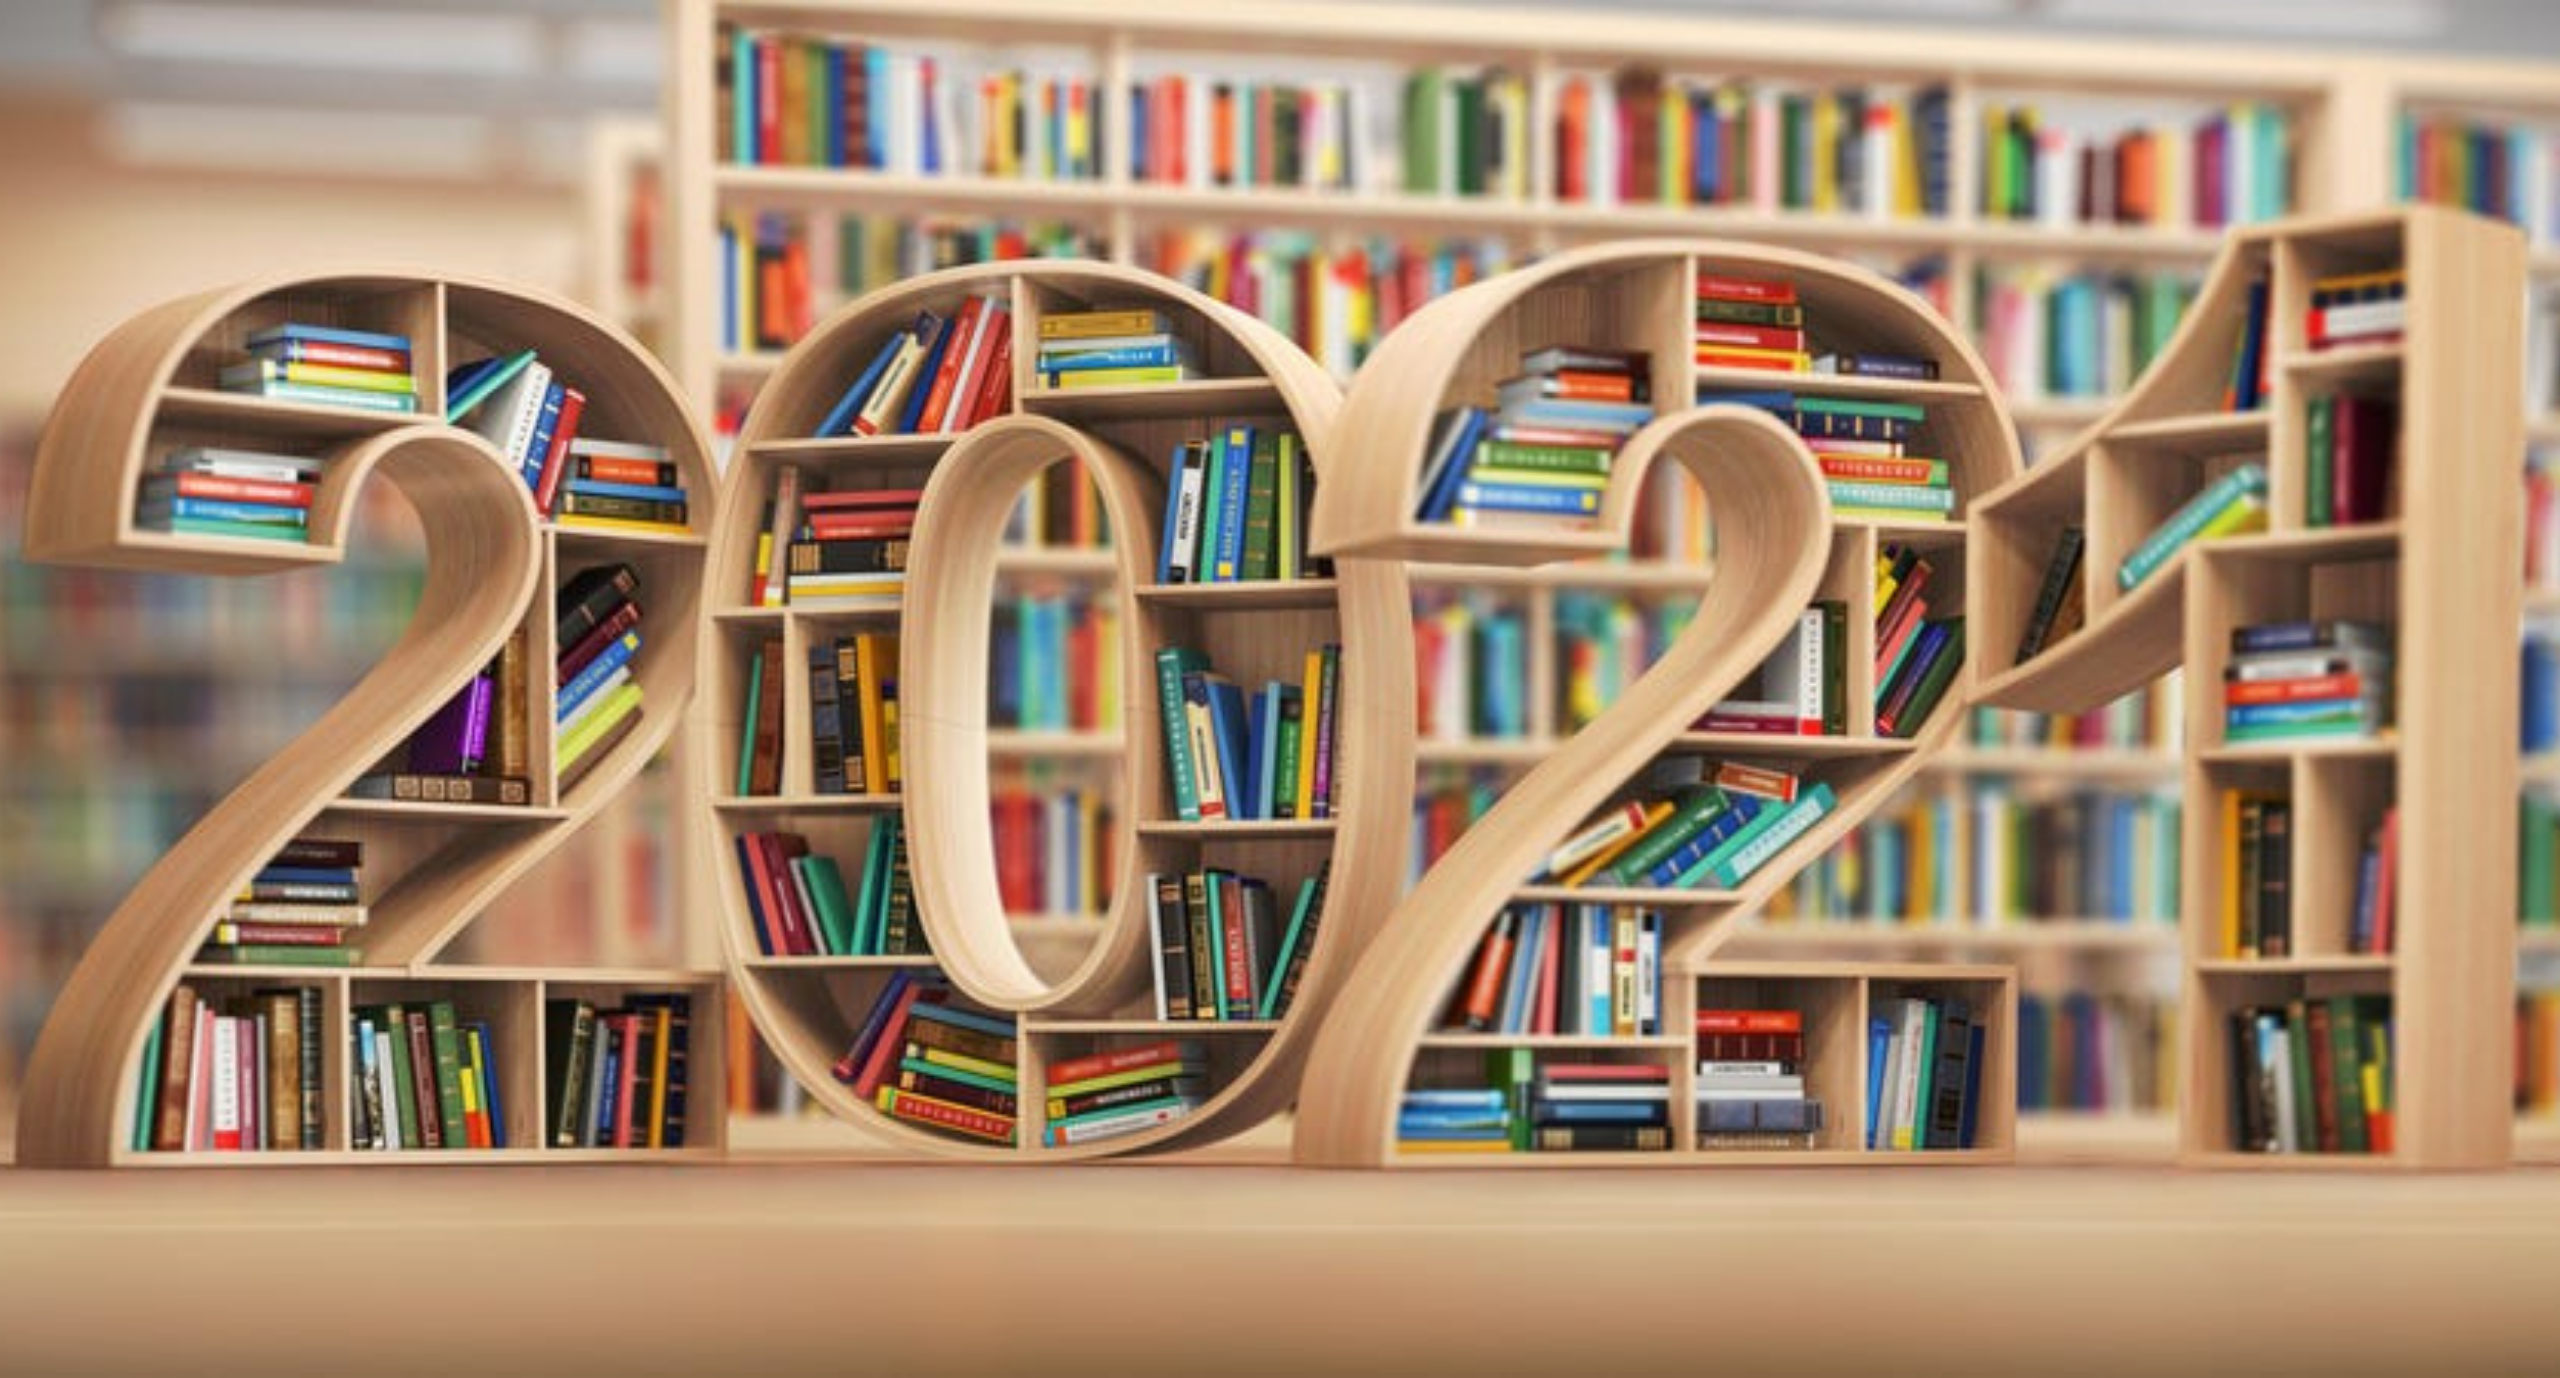 The Ultimate 2021 Book List - 21 Books To Read This Year